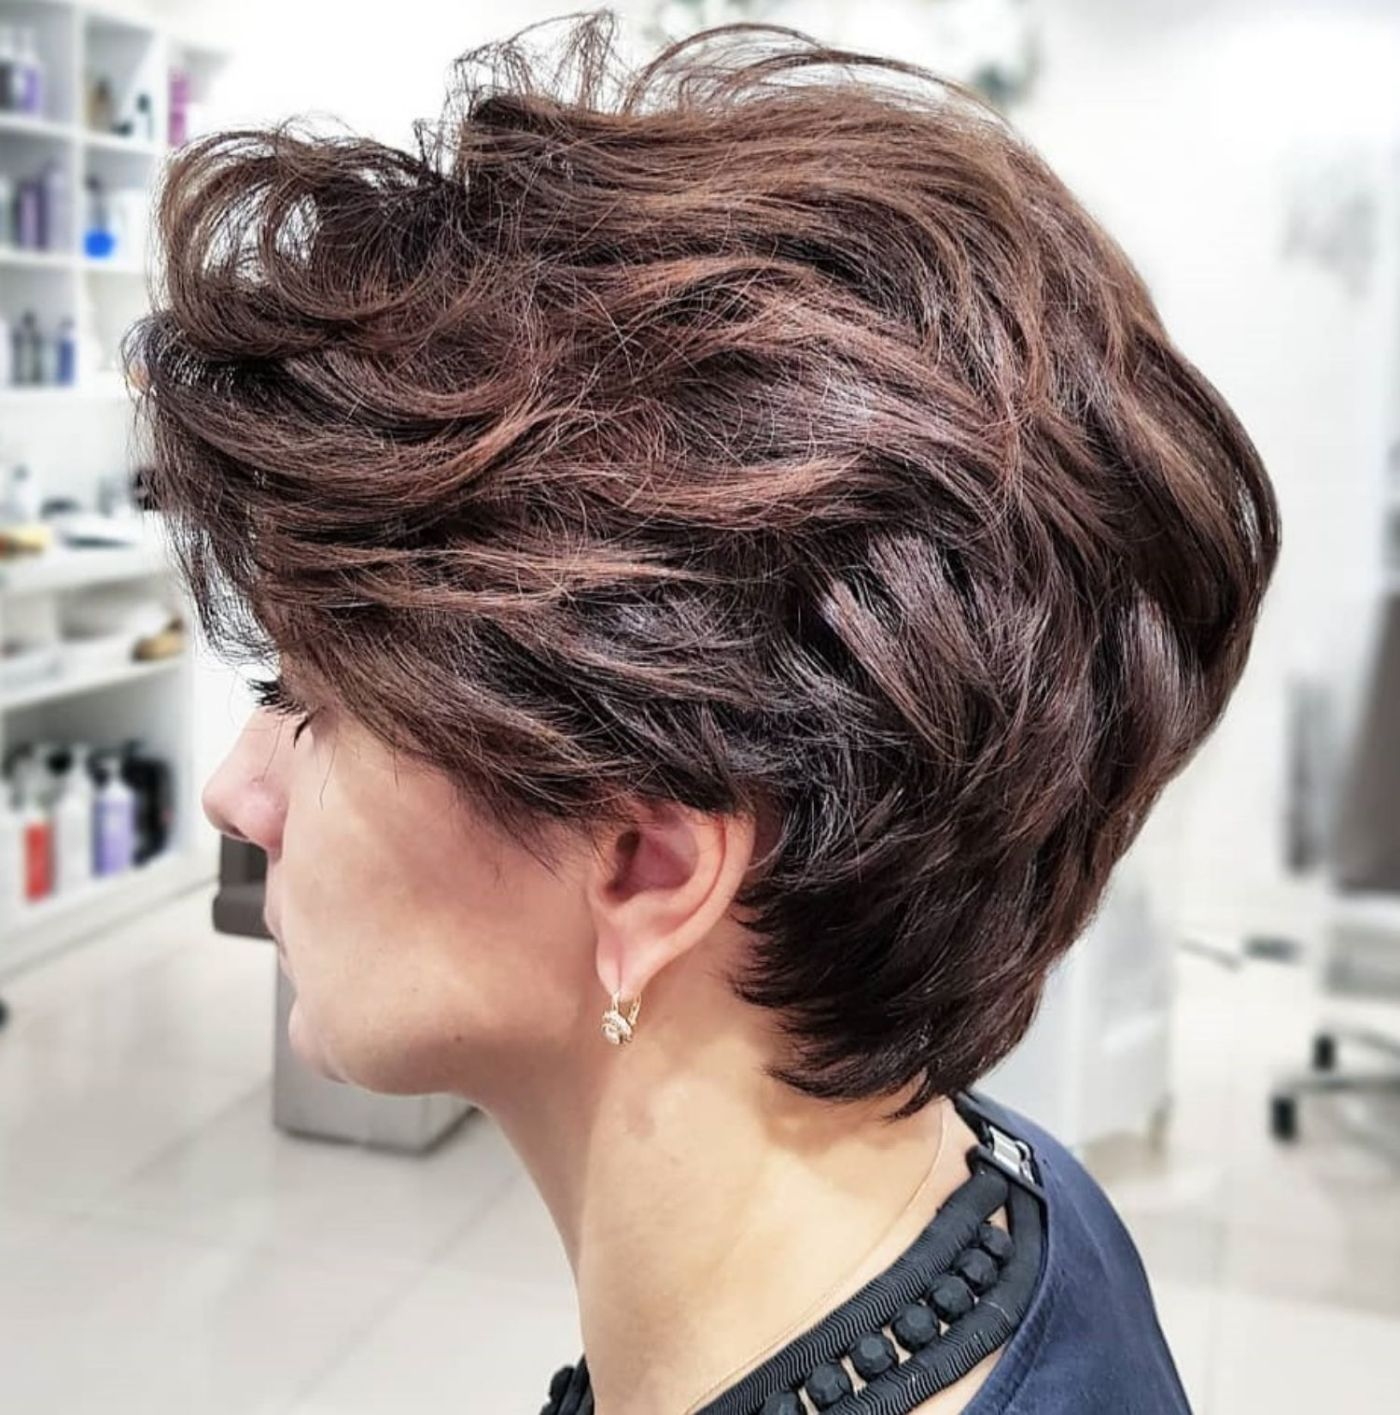 60 Classy Short Haircuts And Hairstyles For Thick Hair Short Hairstyles For Thick Hair Thick Hair Styles Haircut For Thick Hair